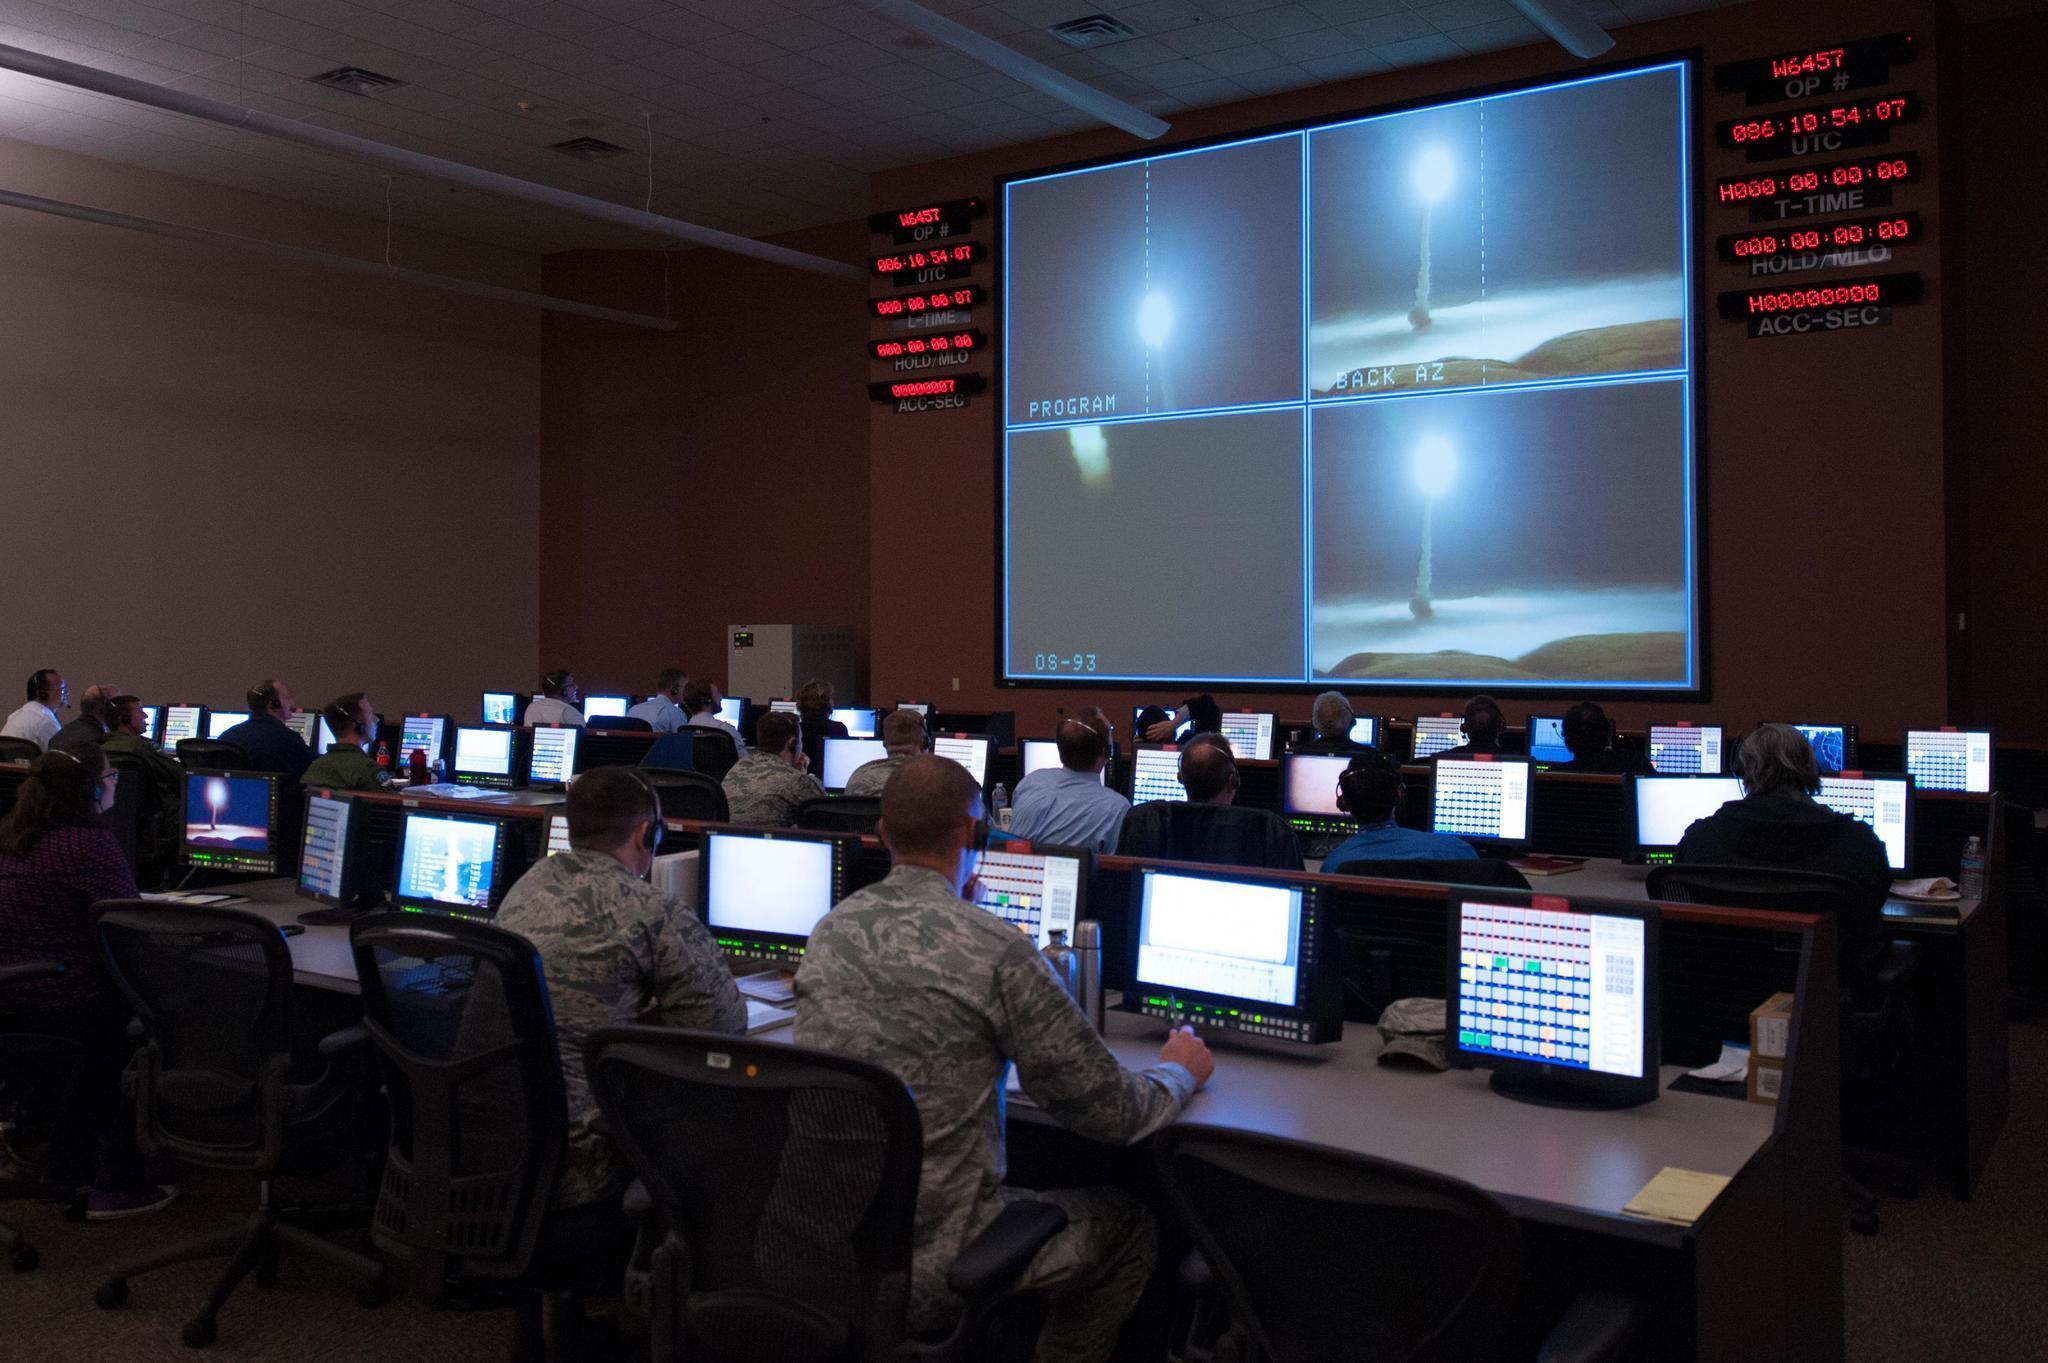 U.S. Air Force to launch test missile off Central California coast (latimes.com)